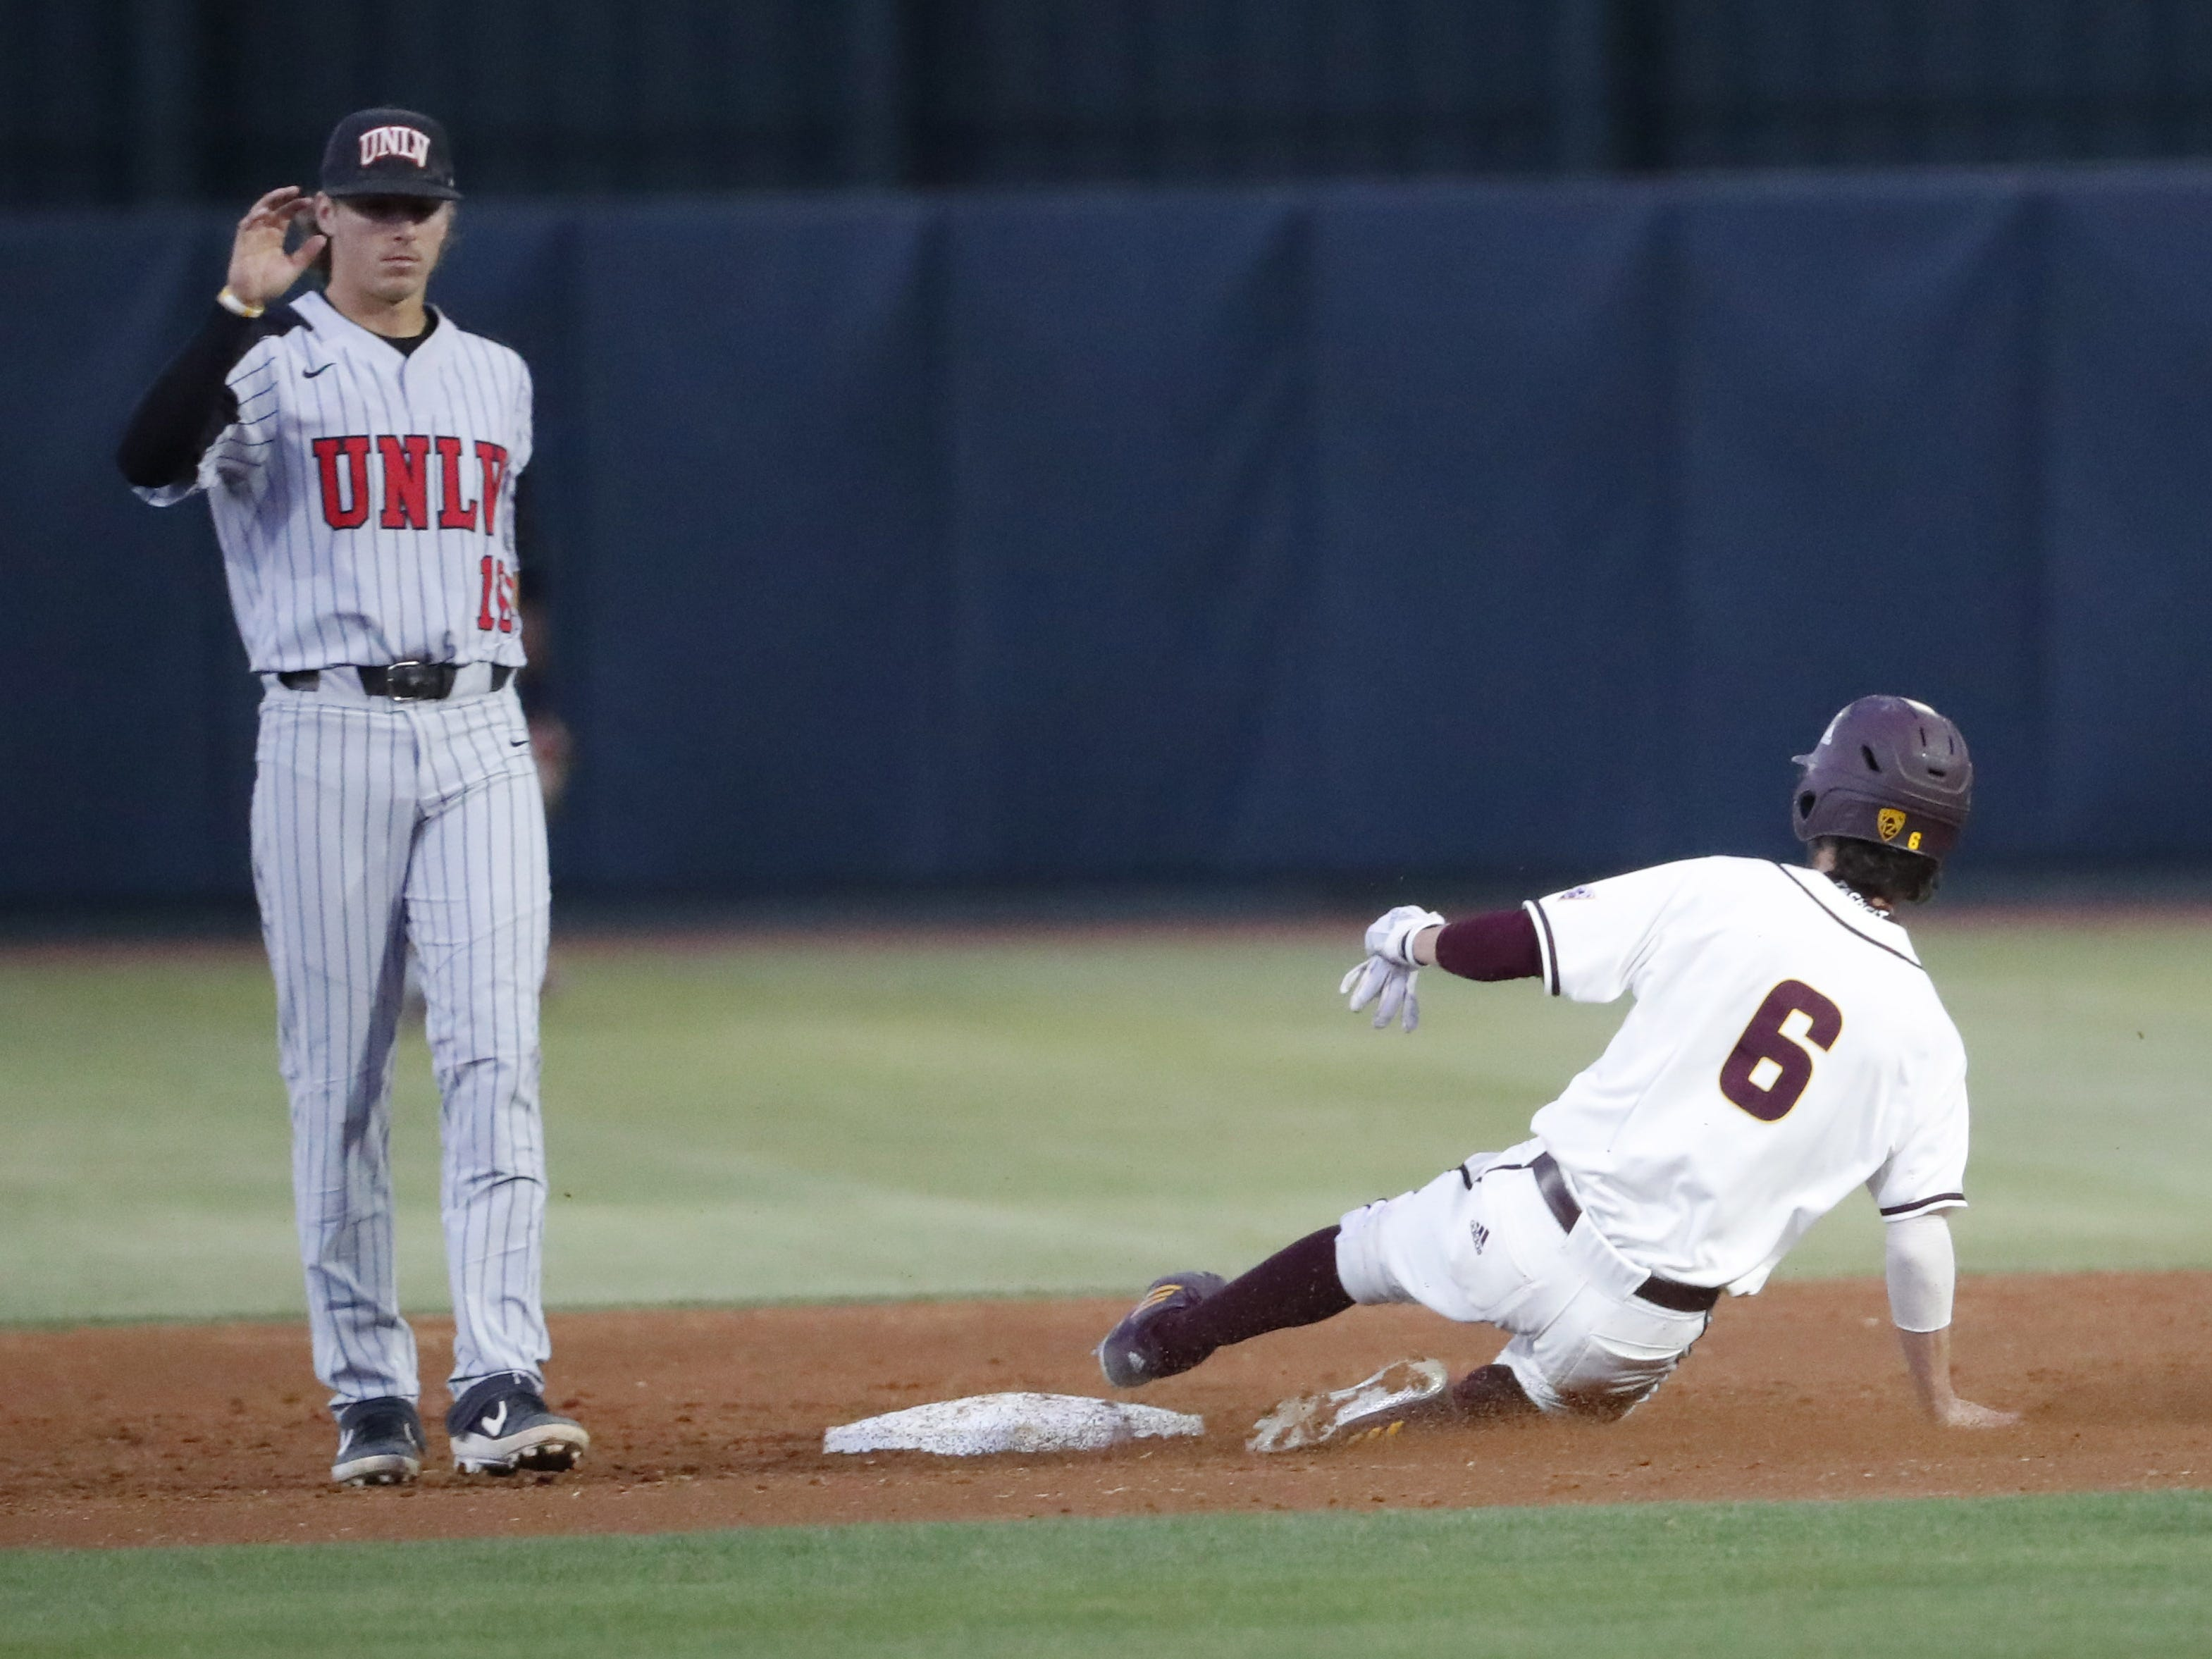 ASU's Drew Swift (6) steal second base against UNLV during the second inning in Phoenix April 23, 2019.